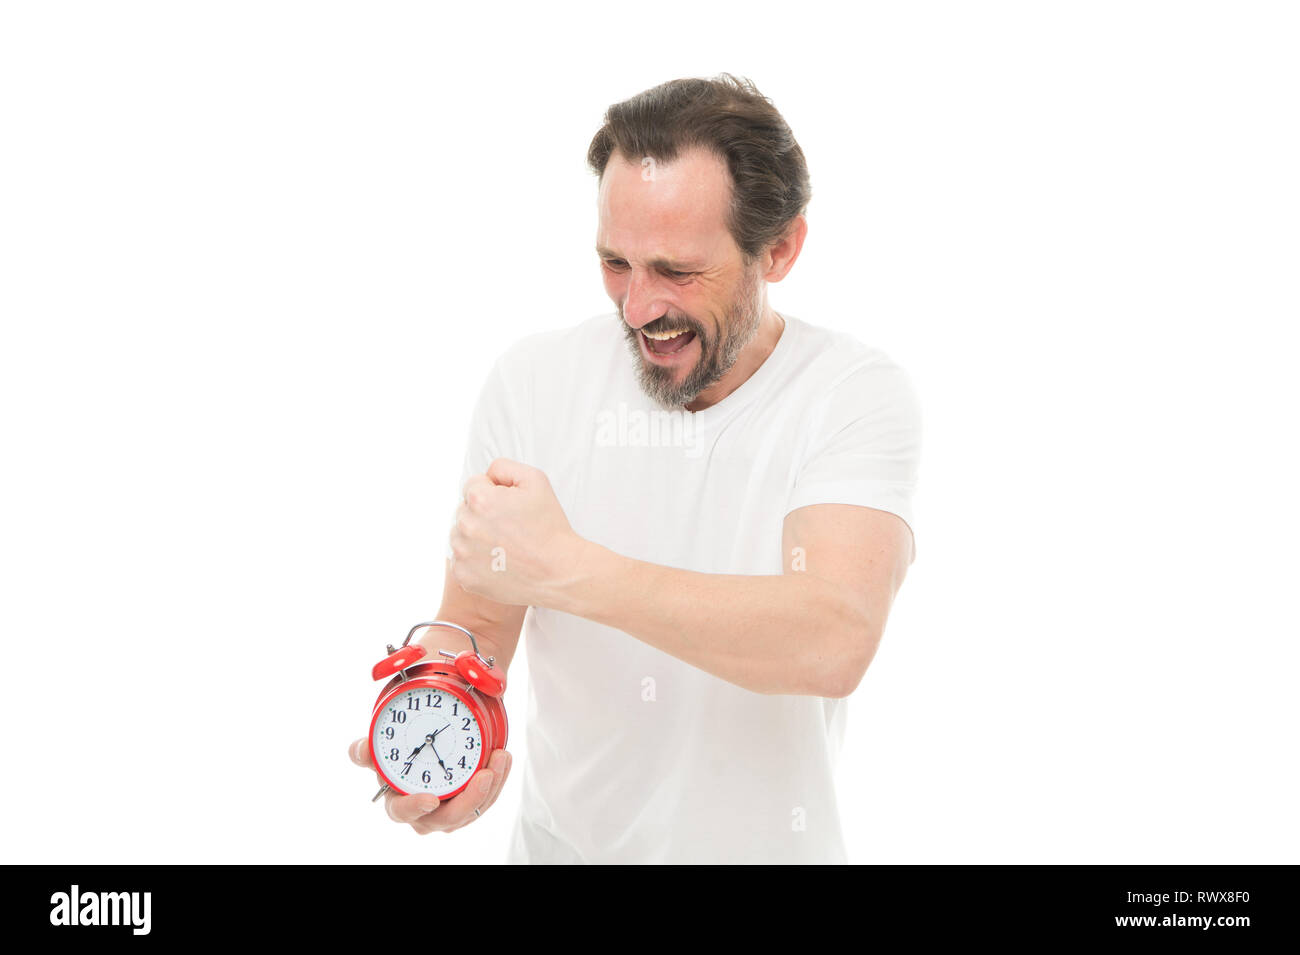 Time management and discipline. Punctuality and responsibility. Man with clock on white background. Suffer from regime. Man hold alarm clock in hand. Guy bearded mature man worry about time left. - Stock Image